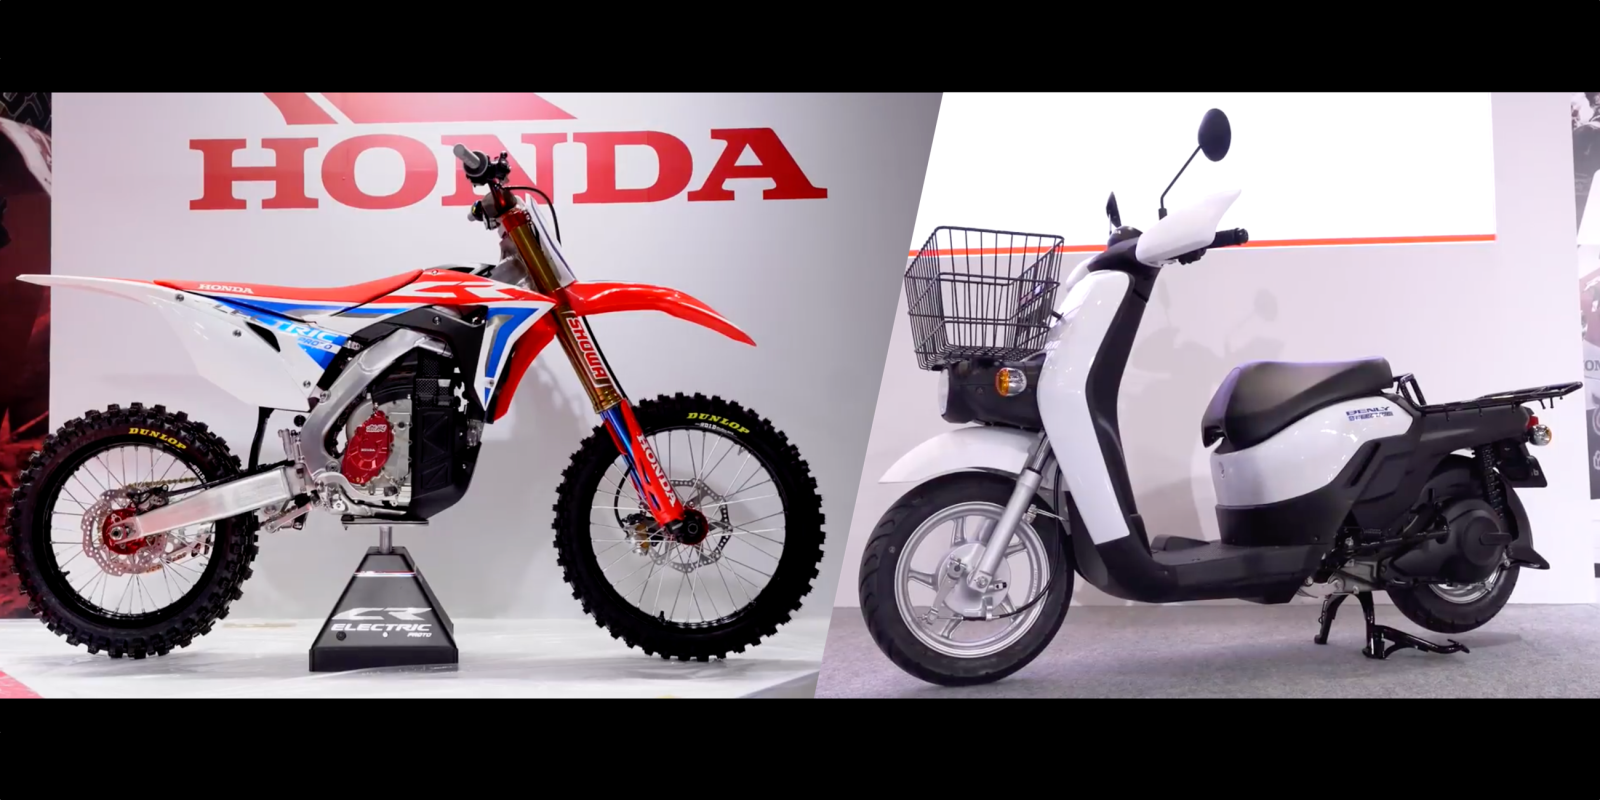 Honda unveils electric version of CRF450 dirt bike & new electric scooter